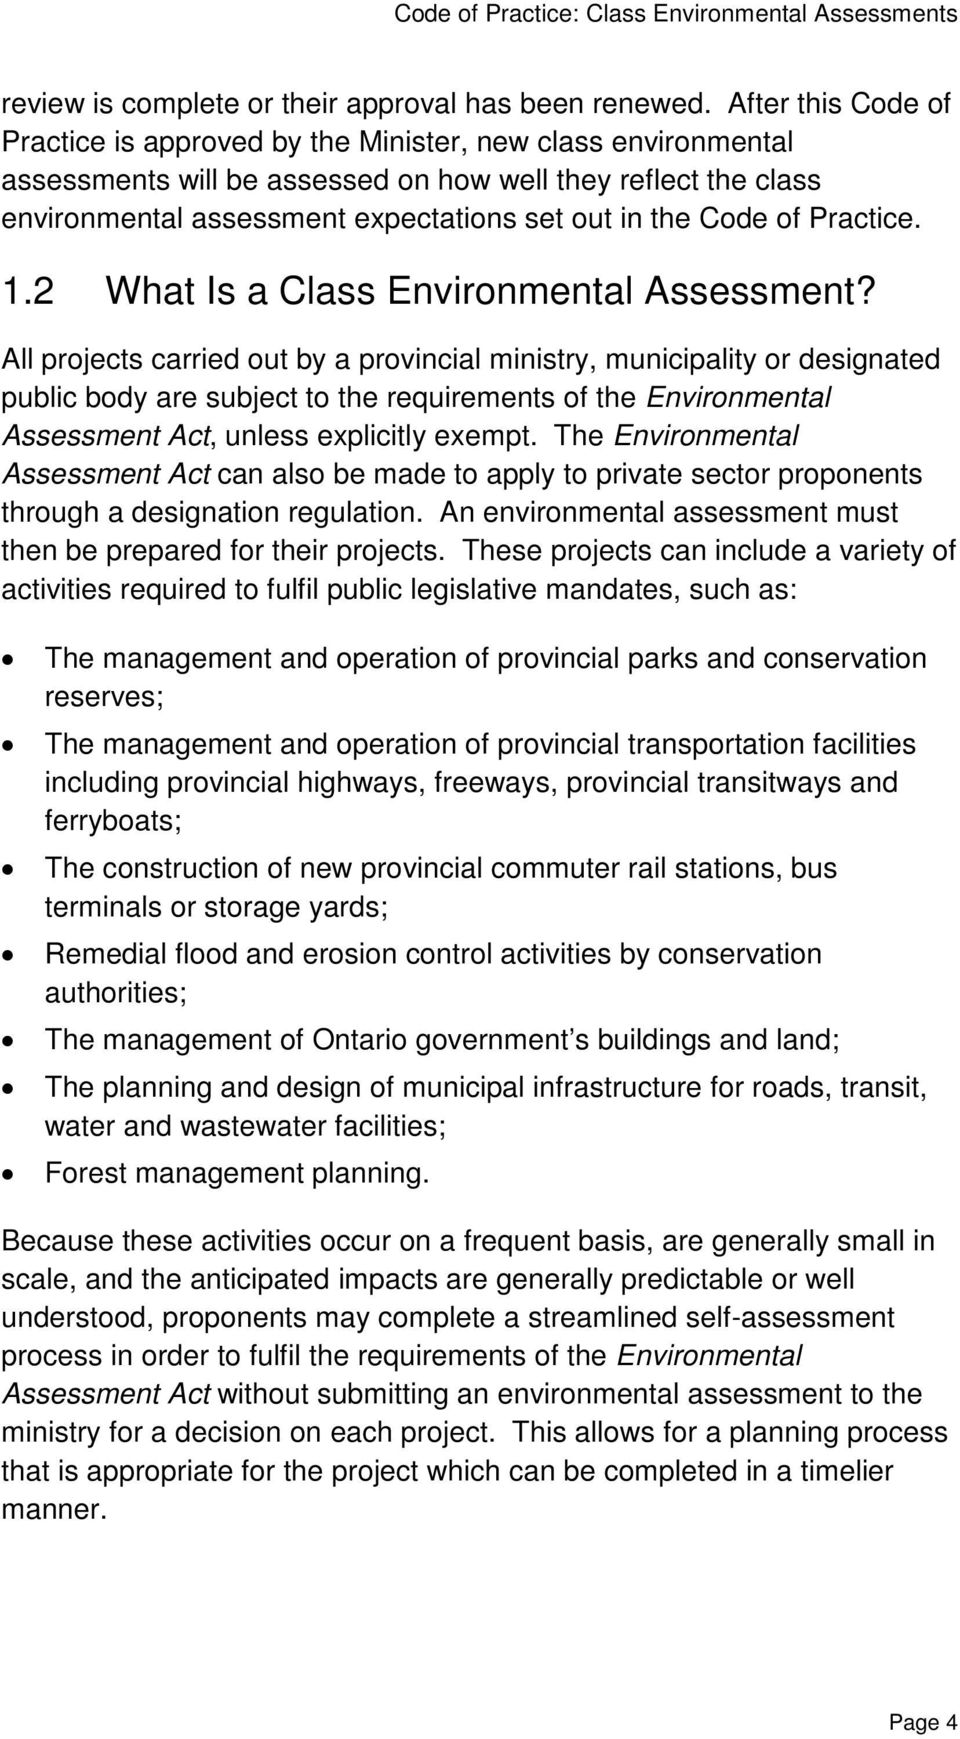 Code of Practice. 1.2 What Is a Class Environmental Assessment?